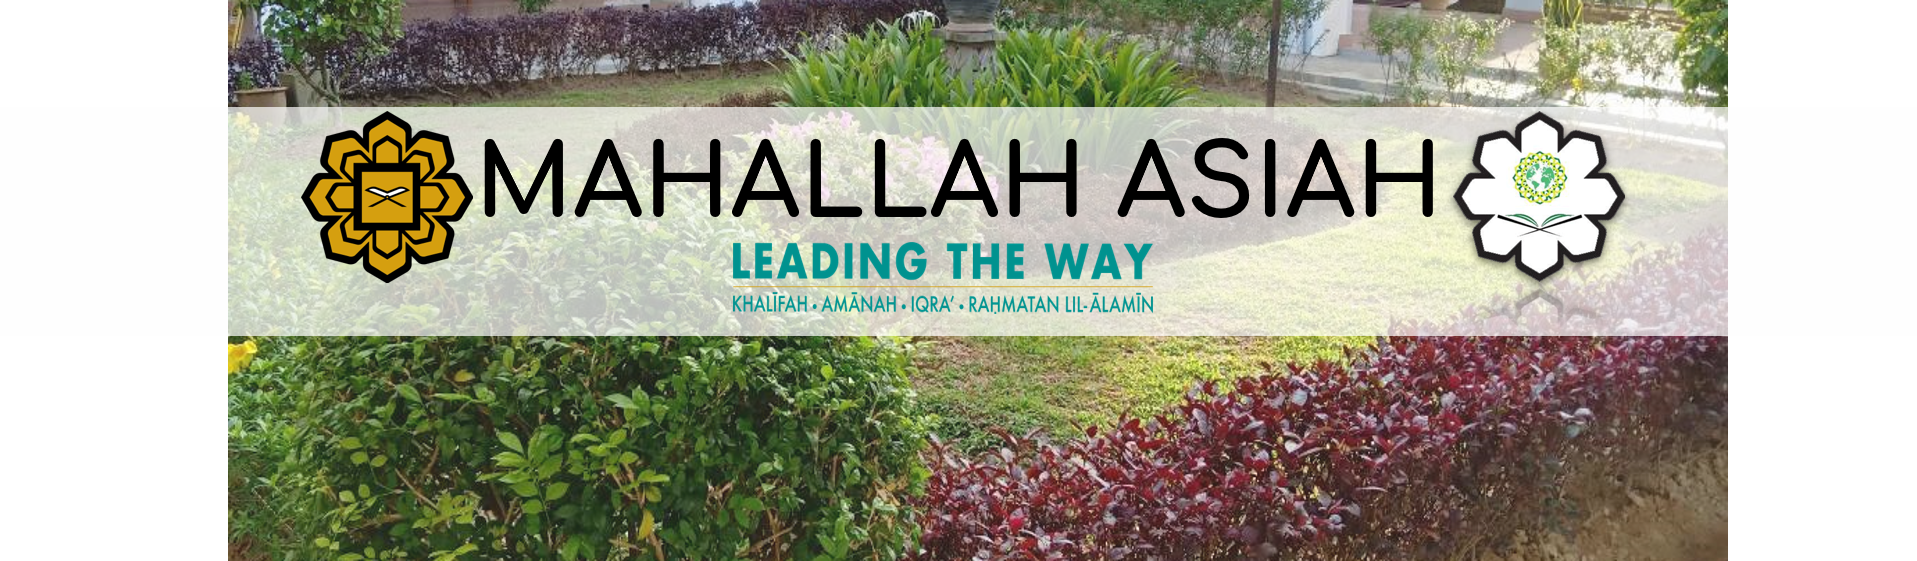 MAHALLAH ASIAH (COLLEGE)